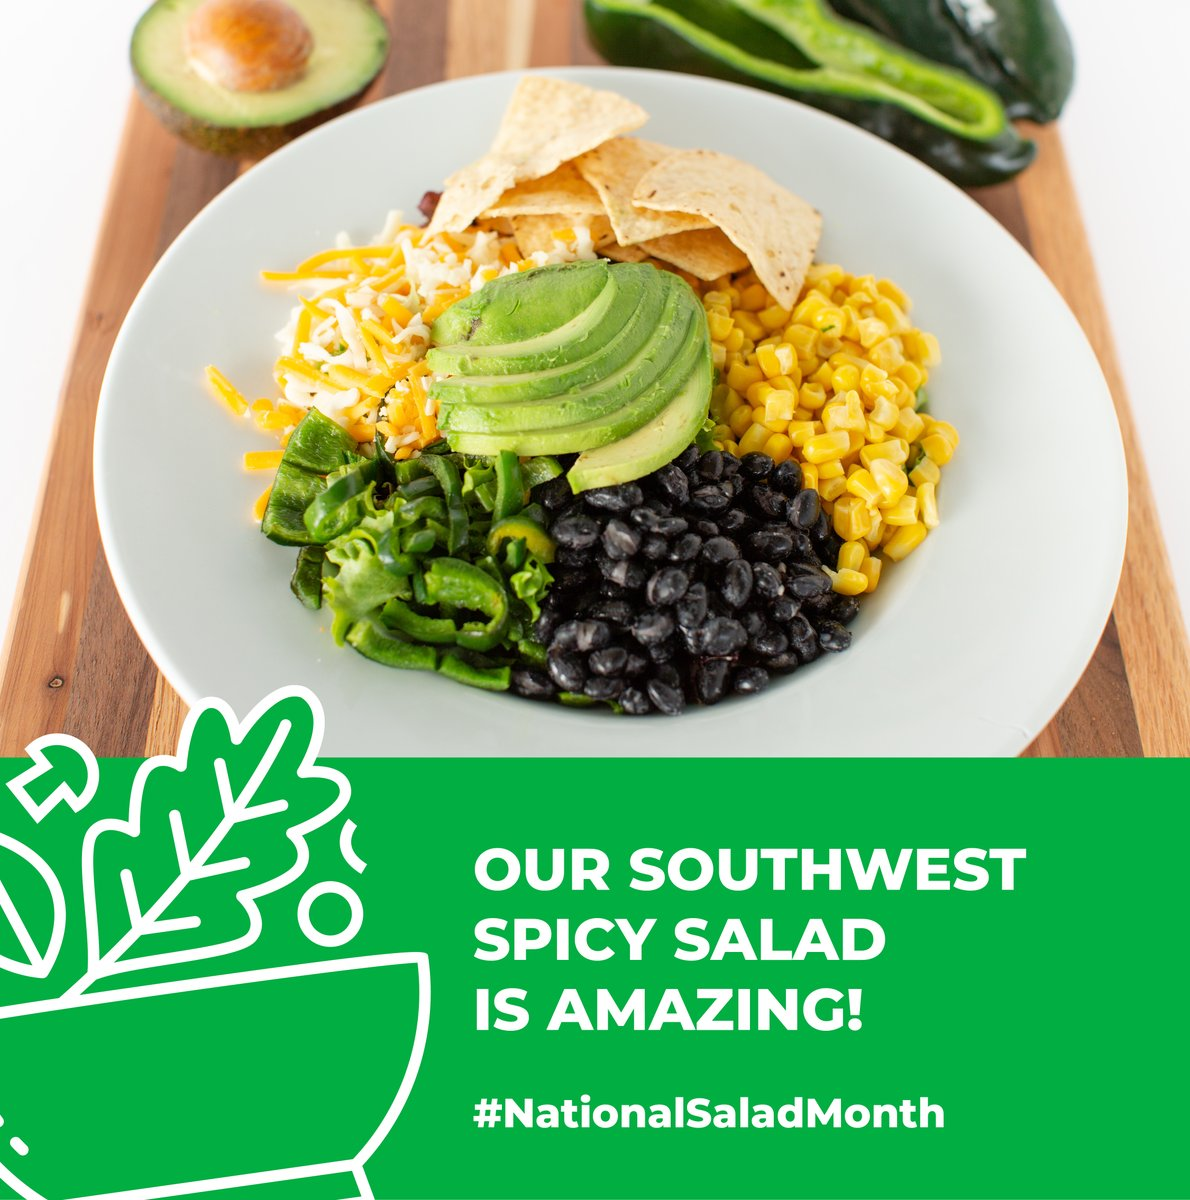 Make it spicy🌶 Our Southwest Spicy Salad features fresh spring mix & baby arugula, black beans, roasted poblano peppers, avocado, corn, corn tortilla chips, artisan blend cheese, and our very own secret Southwest vinaigrette. #NationalSaladMonth https://t.co/MOSbIZ6isf